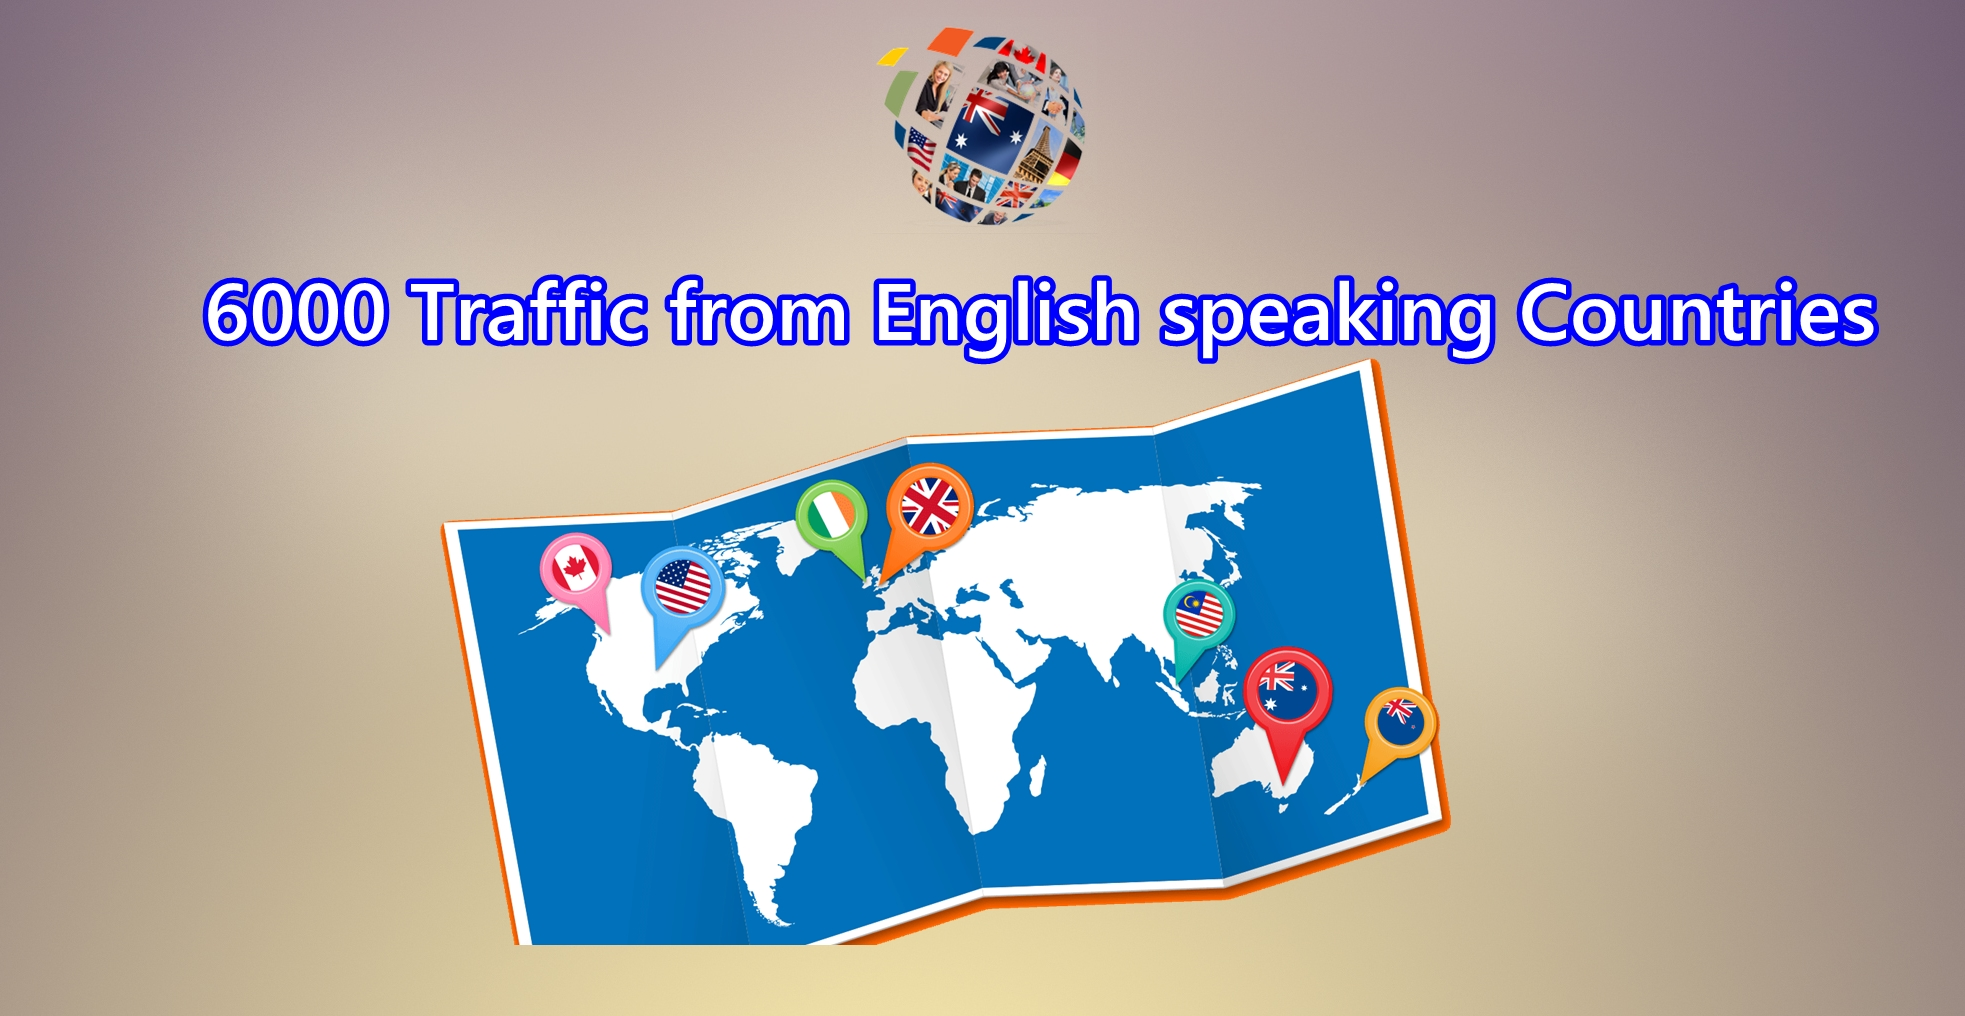 send Send 6000 visitors from English speaking countries